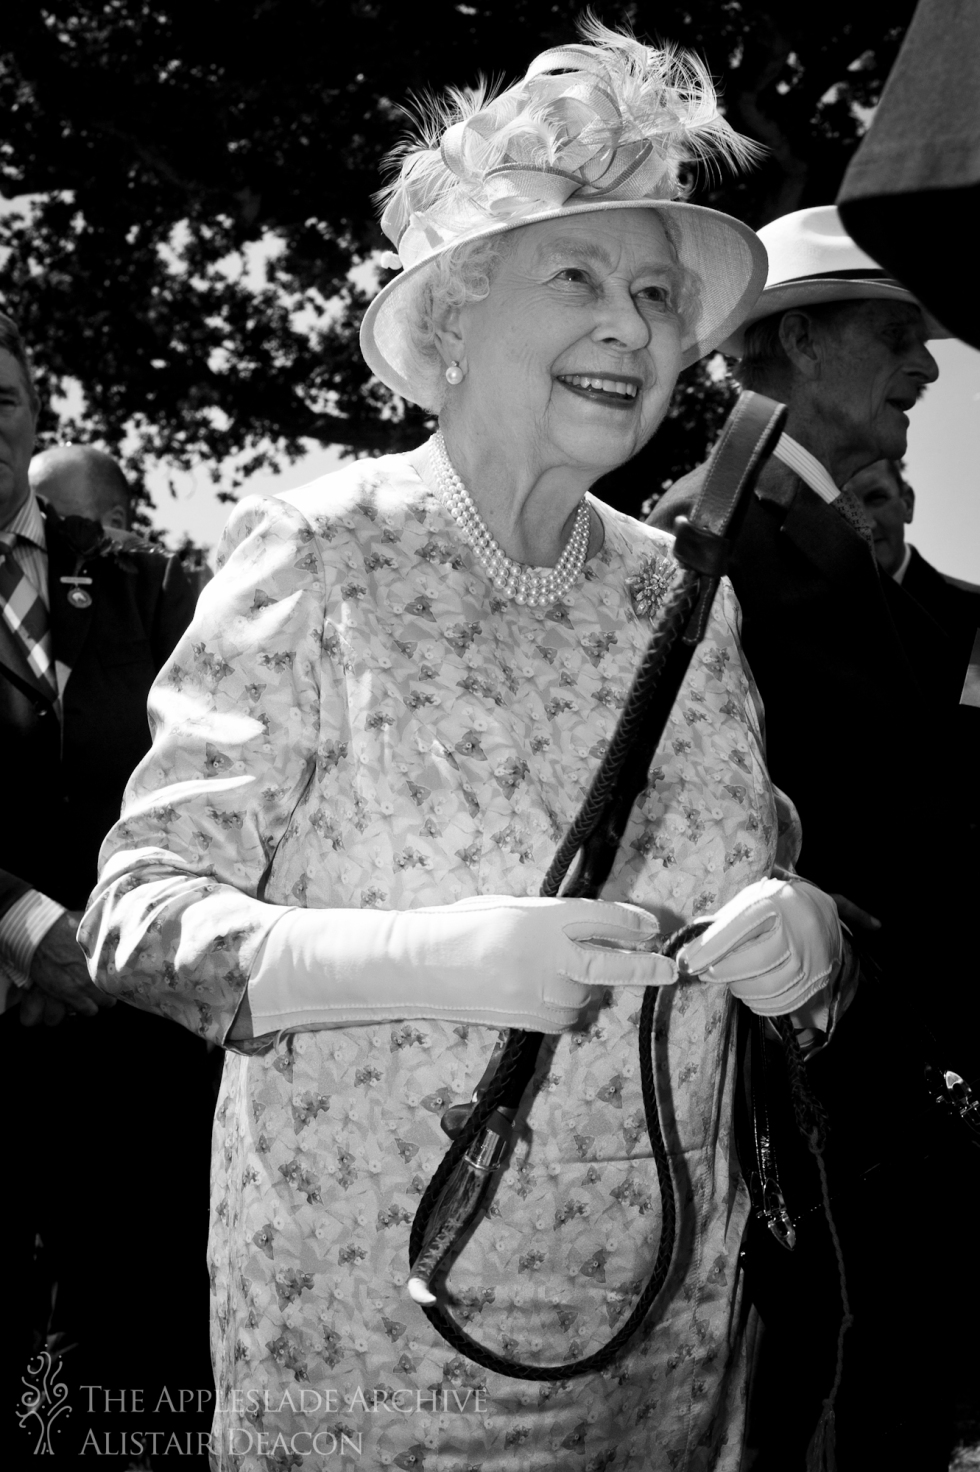 Queen Elizabeth II of England recieves a commemorative hunting whip from the Commoners of the New Forest in celebration of her 60th year on the throne, New Forest Show, New Forest, Hampshire, 25th July 2012